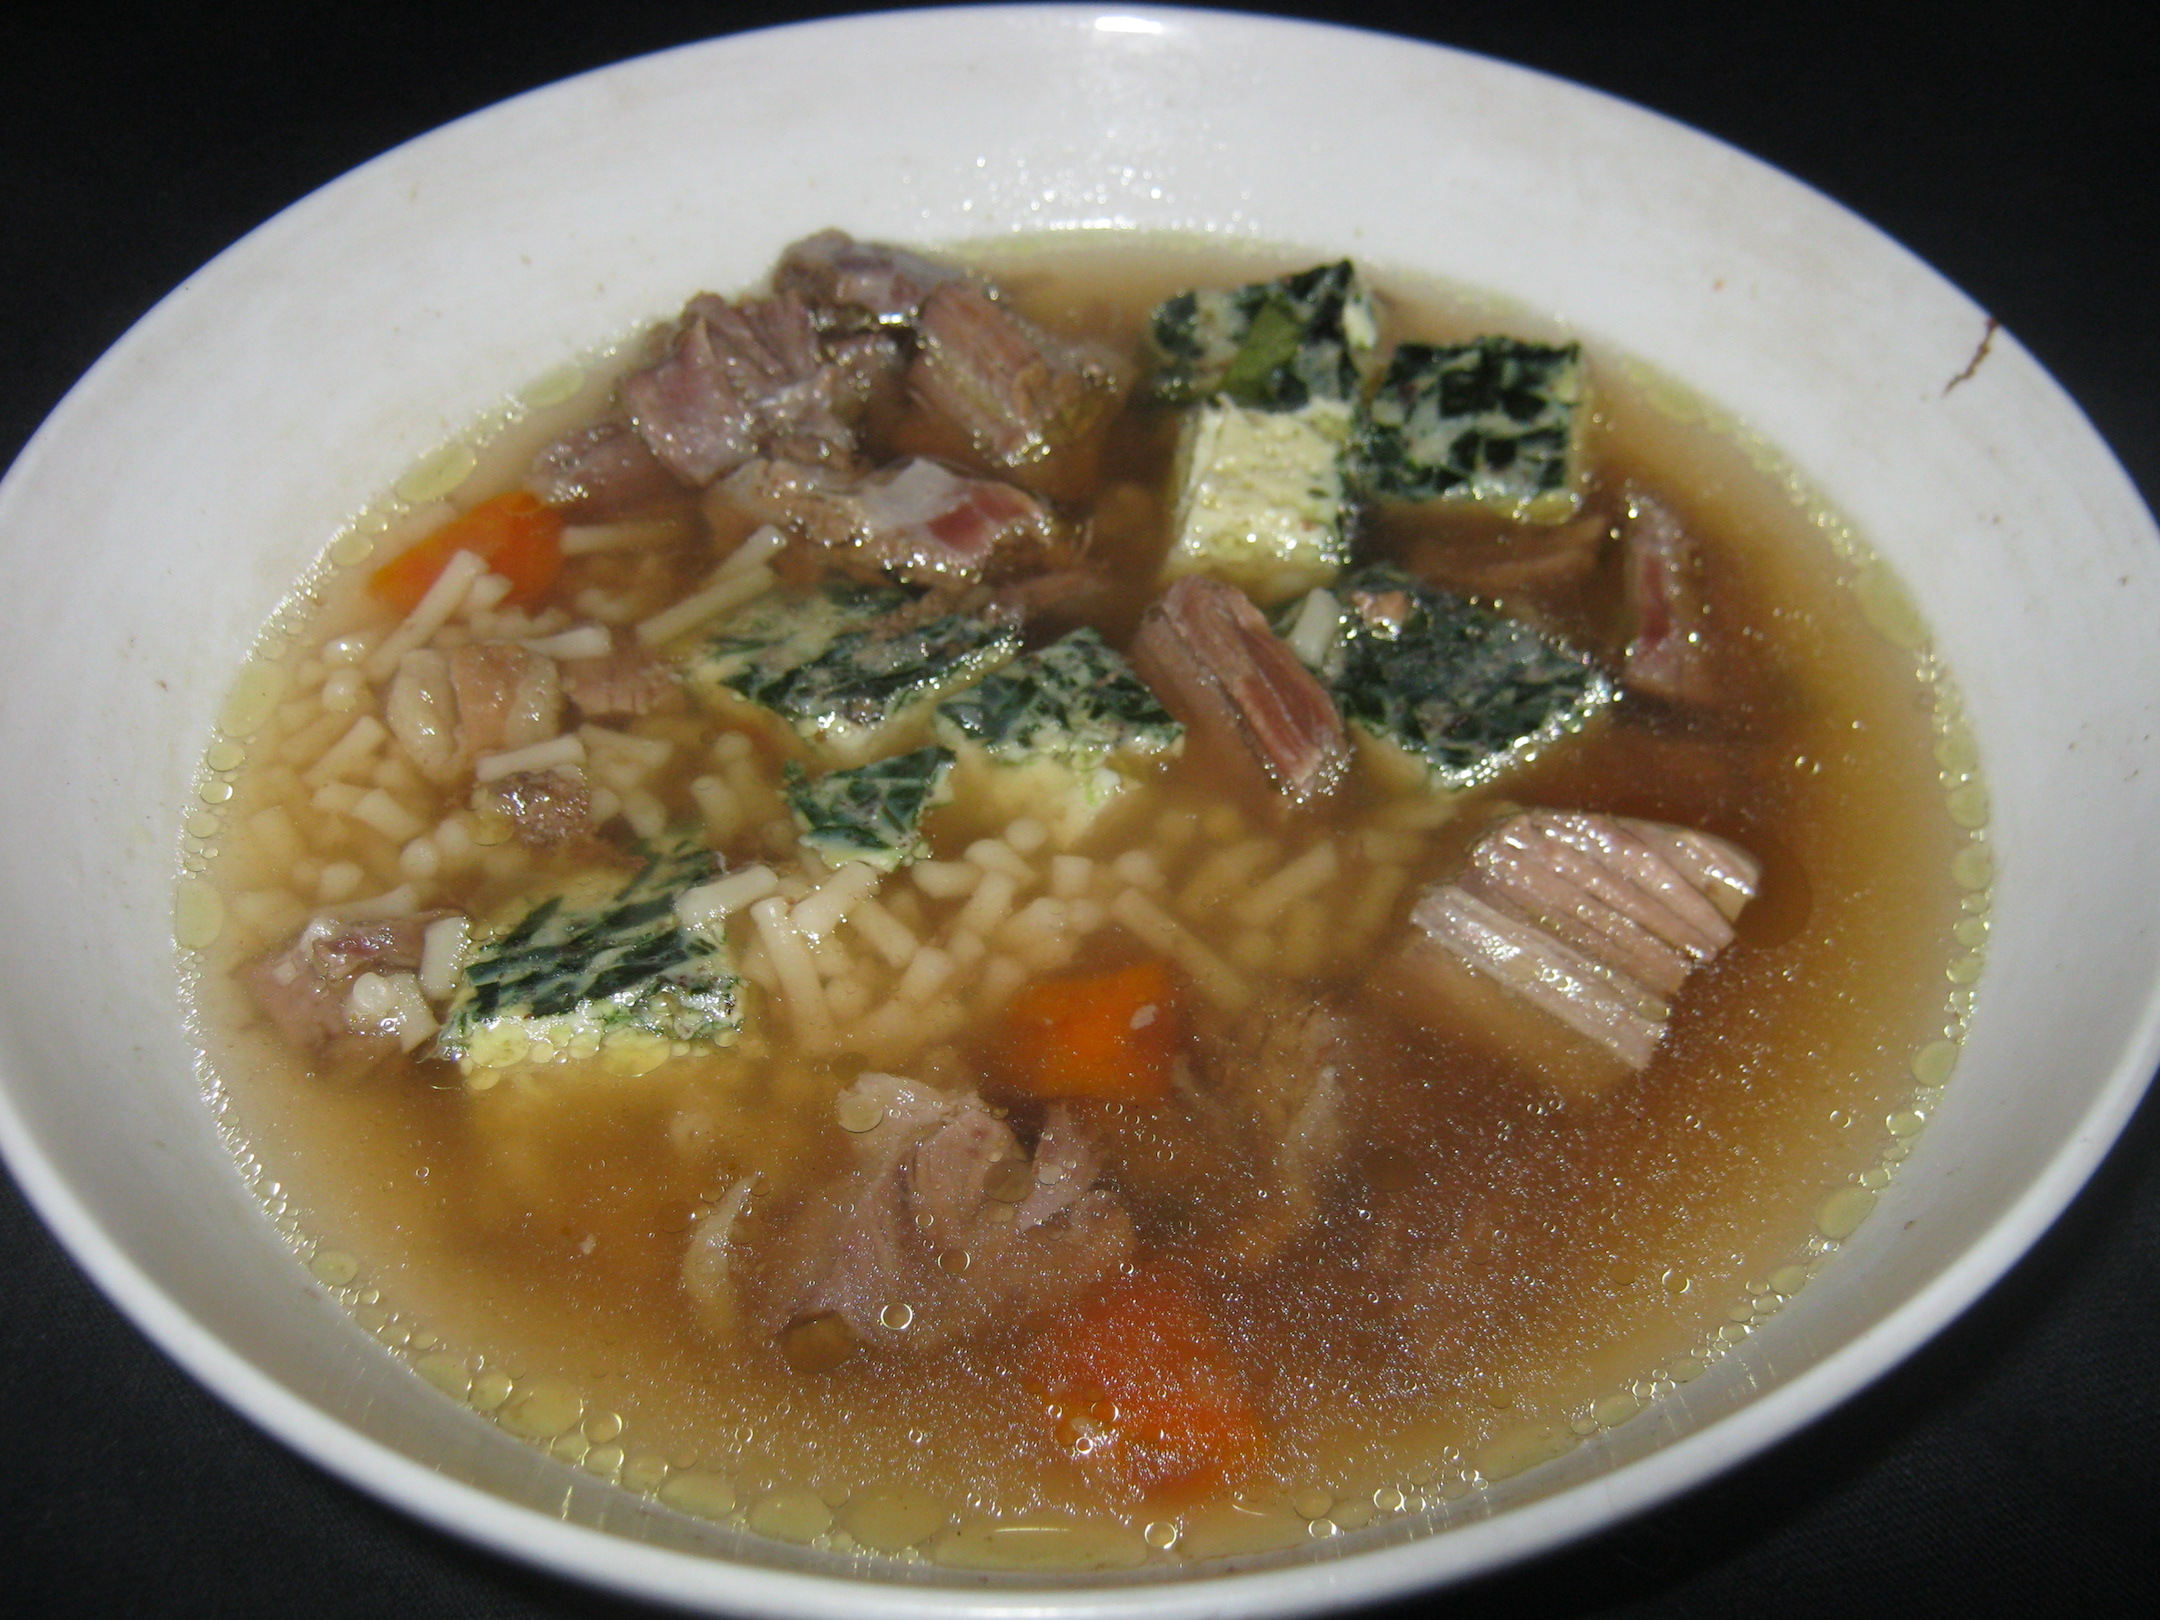 Clear Meat broth with green eierstich